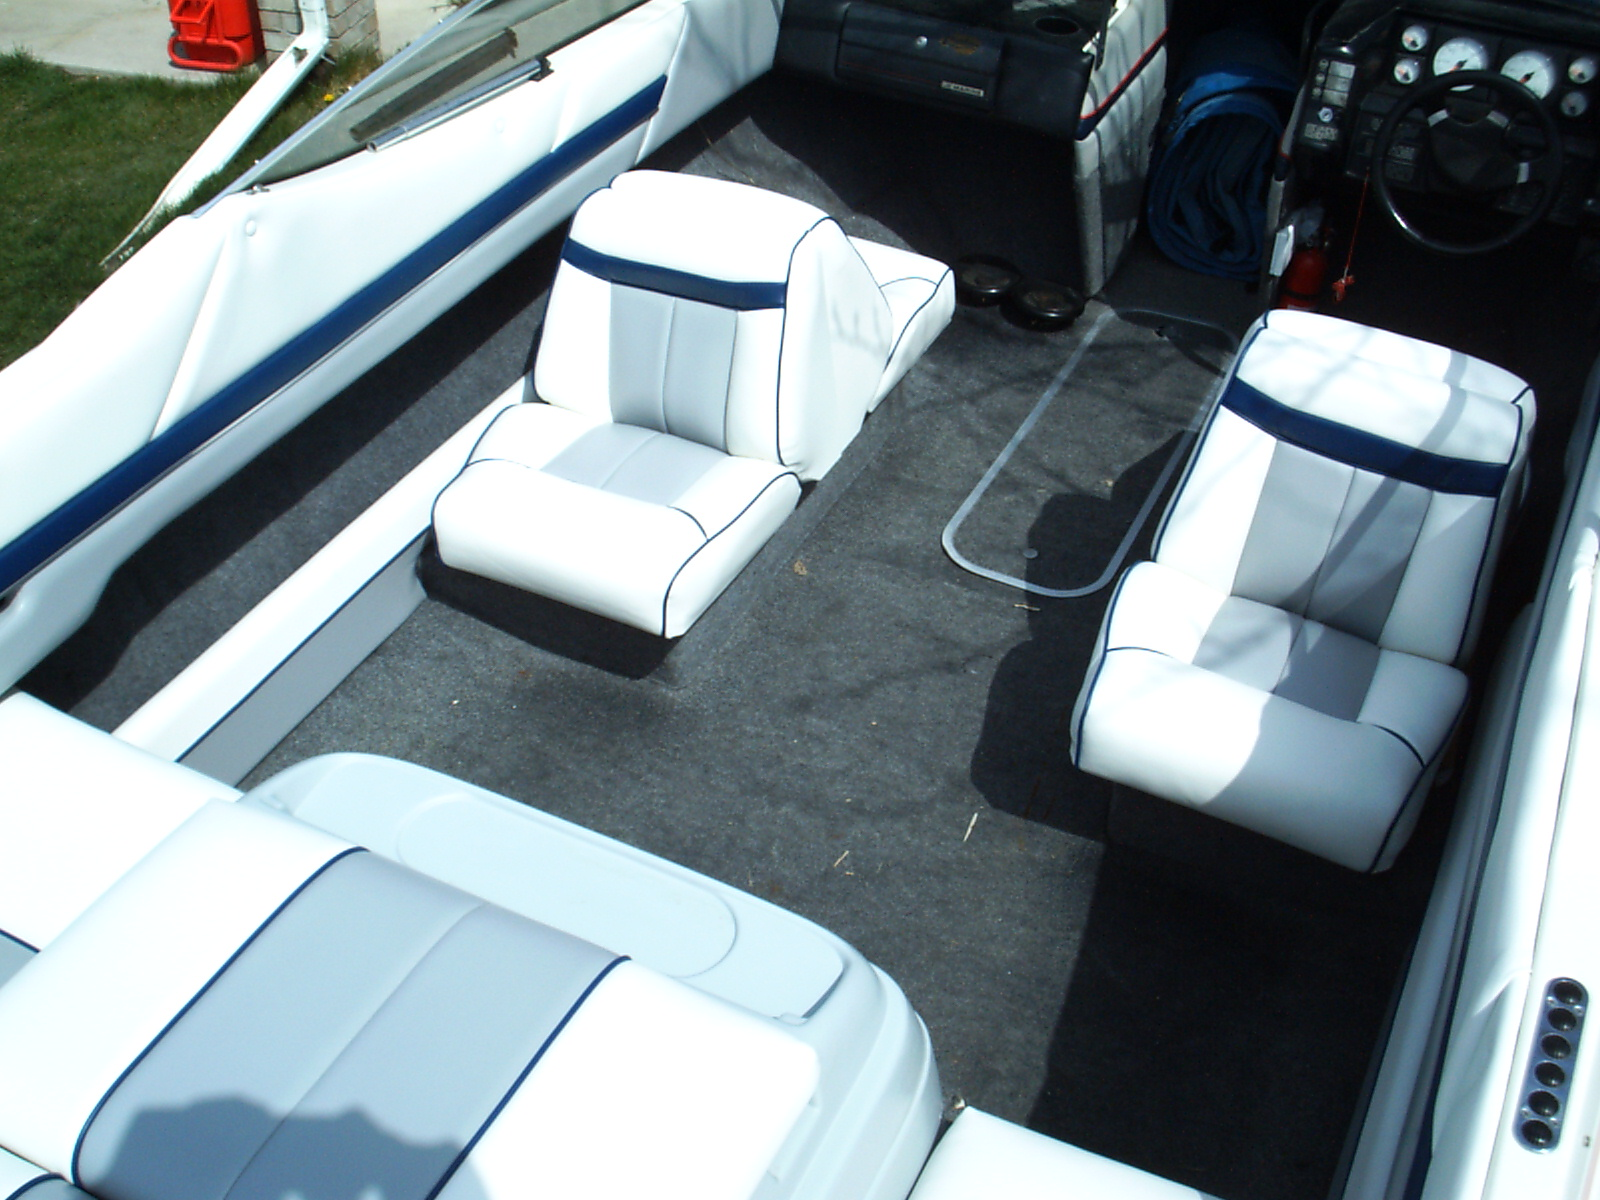 Boat captains chairs - This Boat Started With Two Captains Chairs And Rear Jump Seats We Designed A Wrap Around Bench For The Customer And Made More Seating